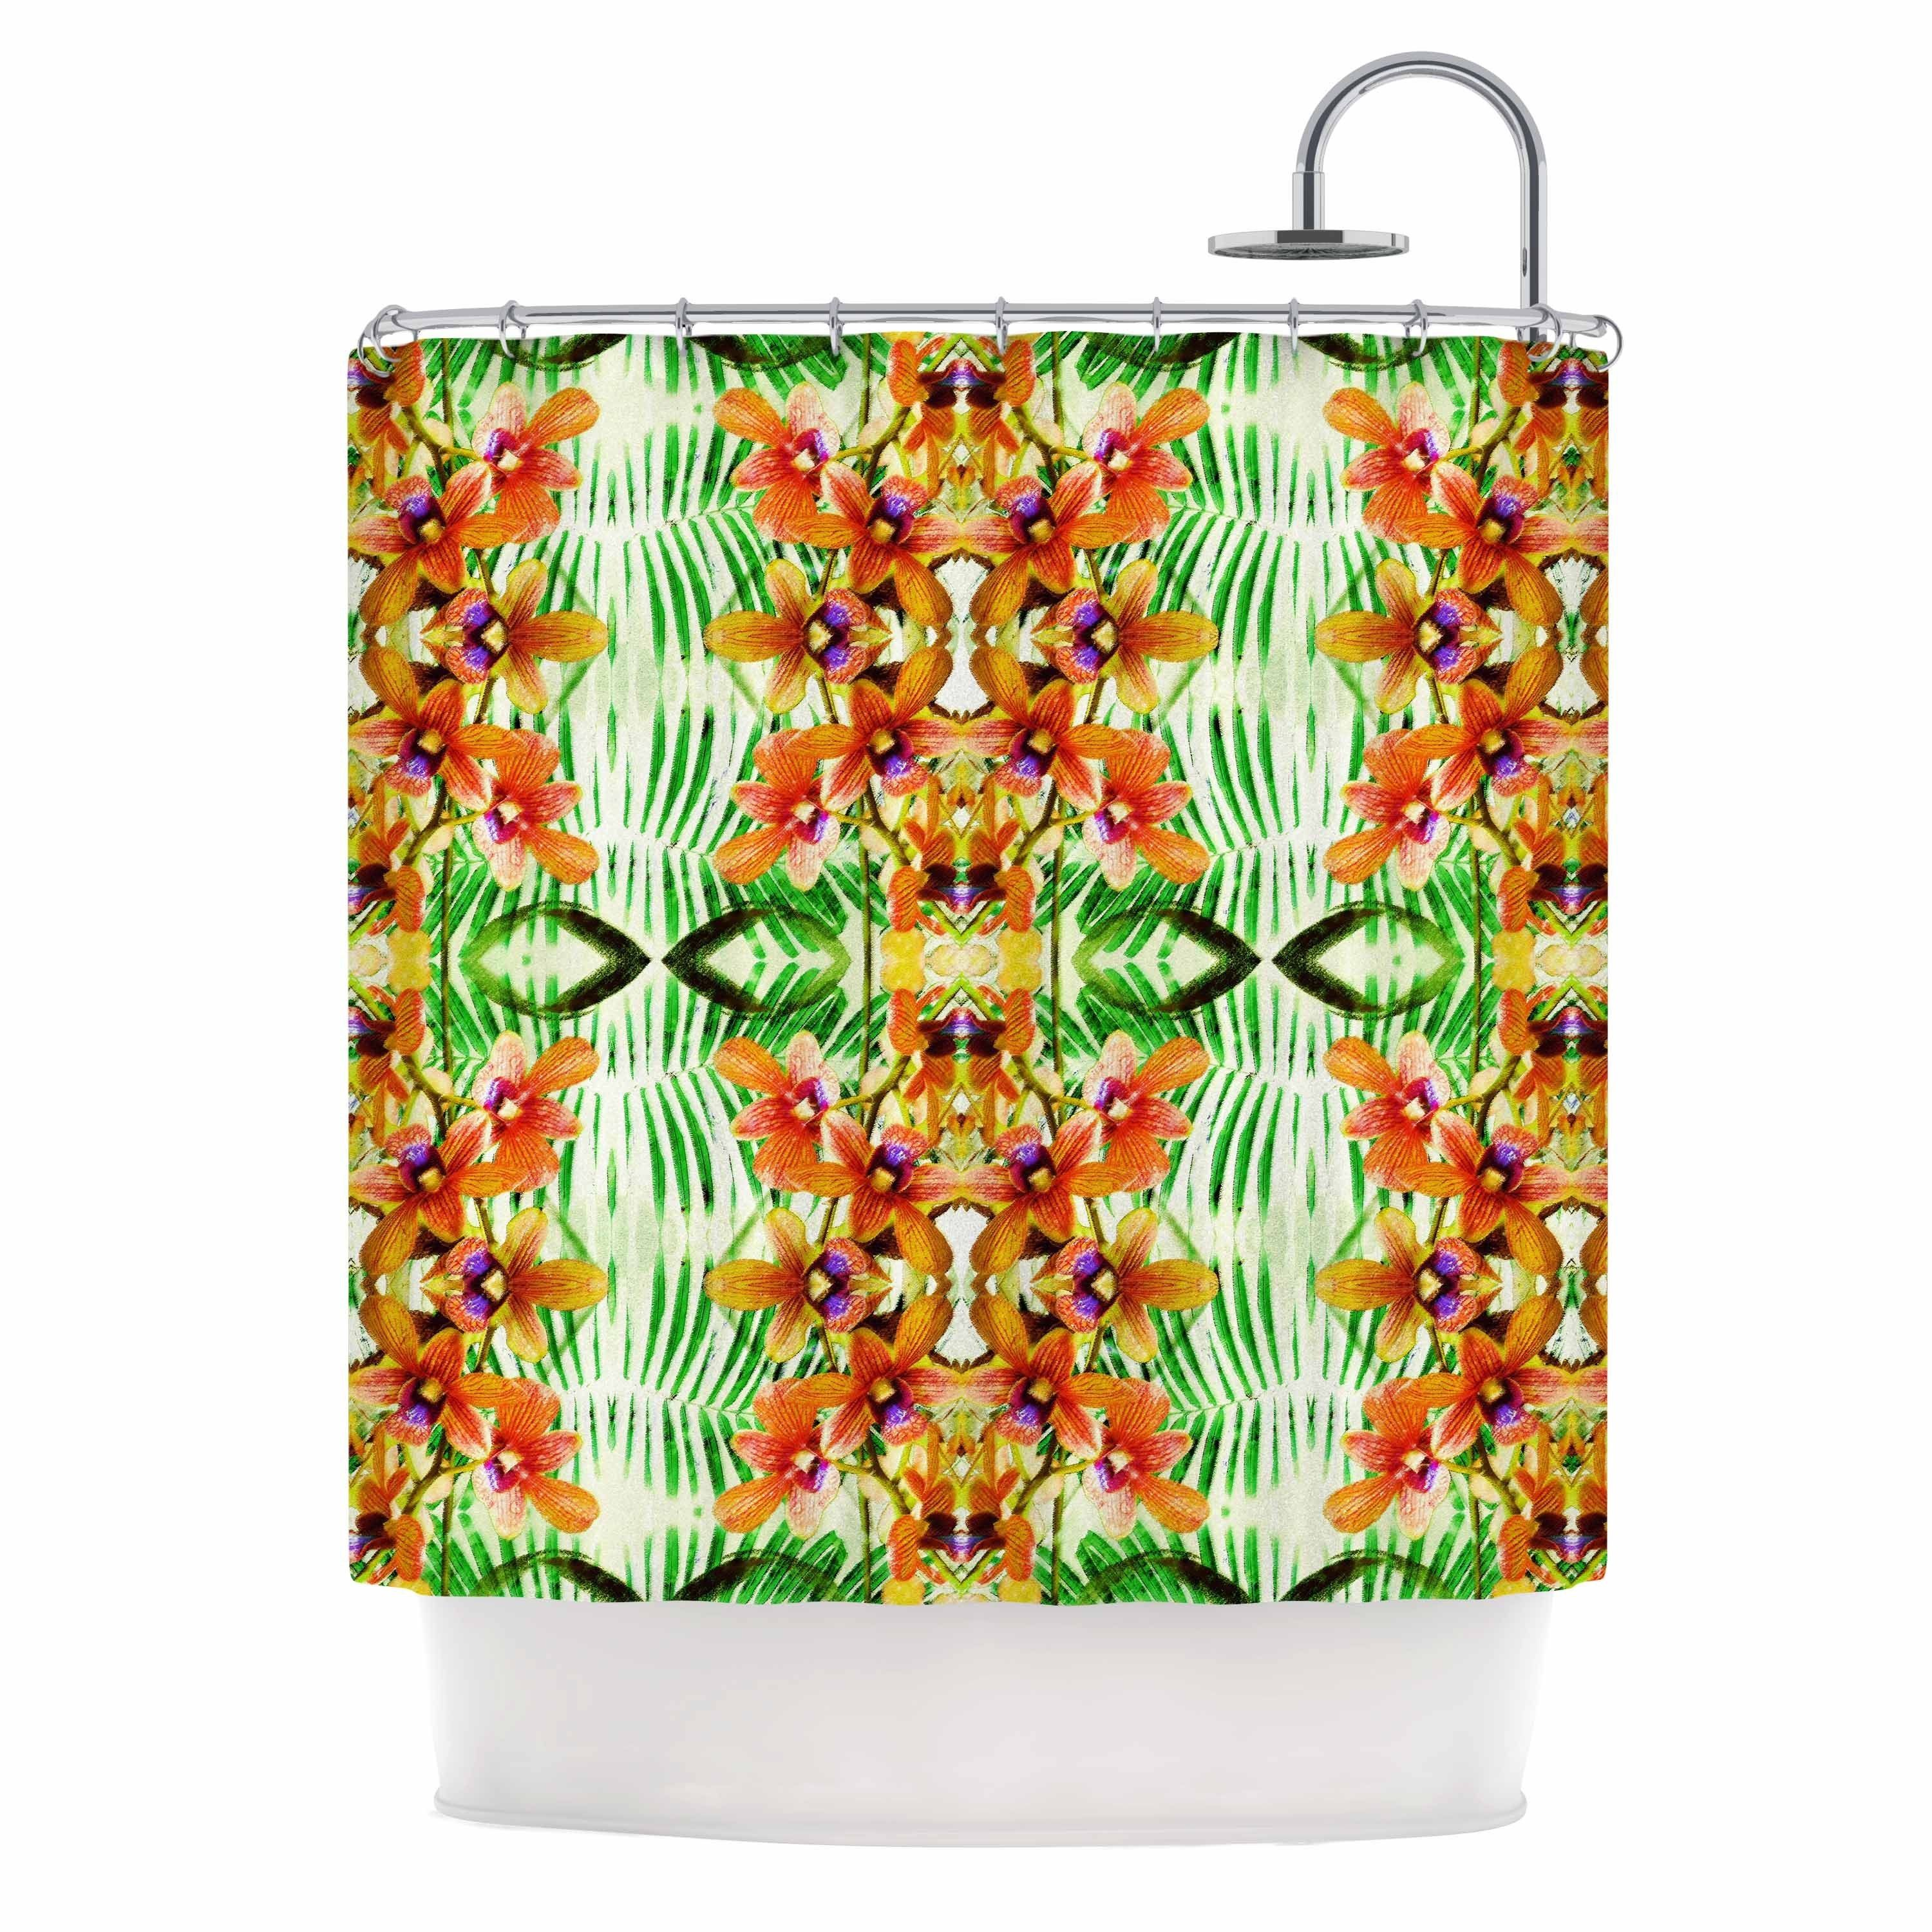 angles hour kess shower curtains interior per designer salary curtain